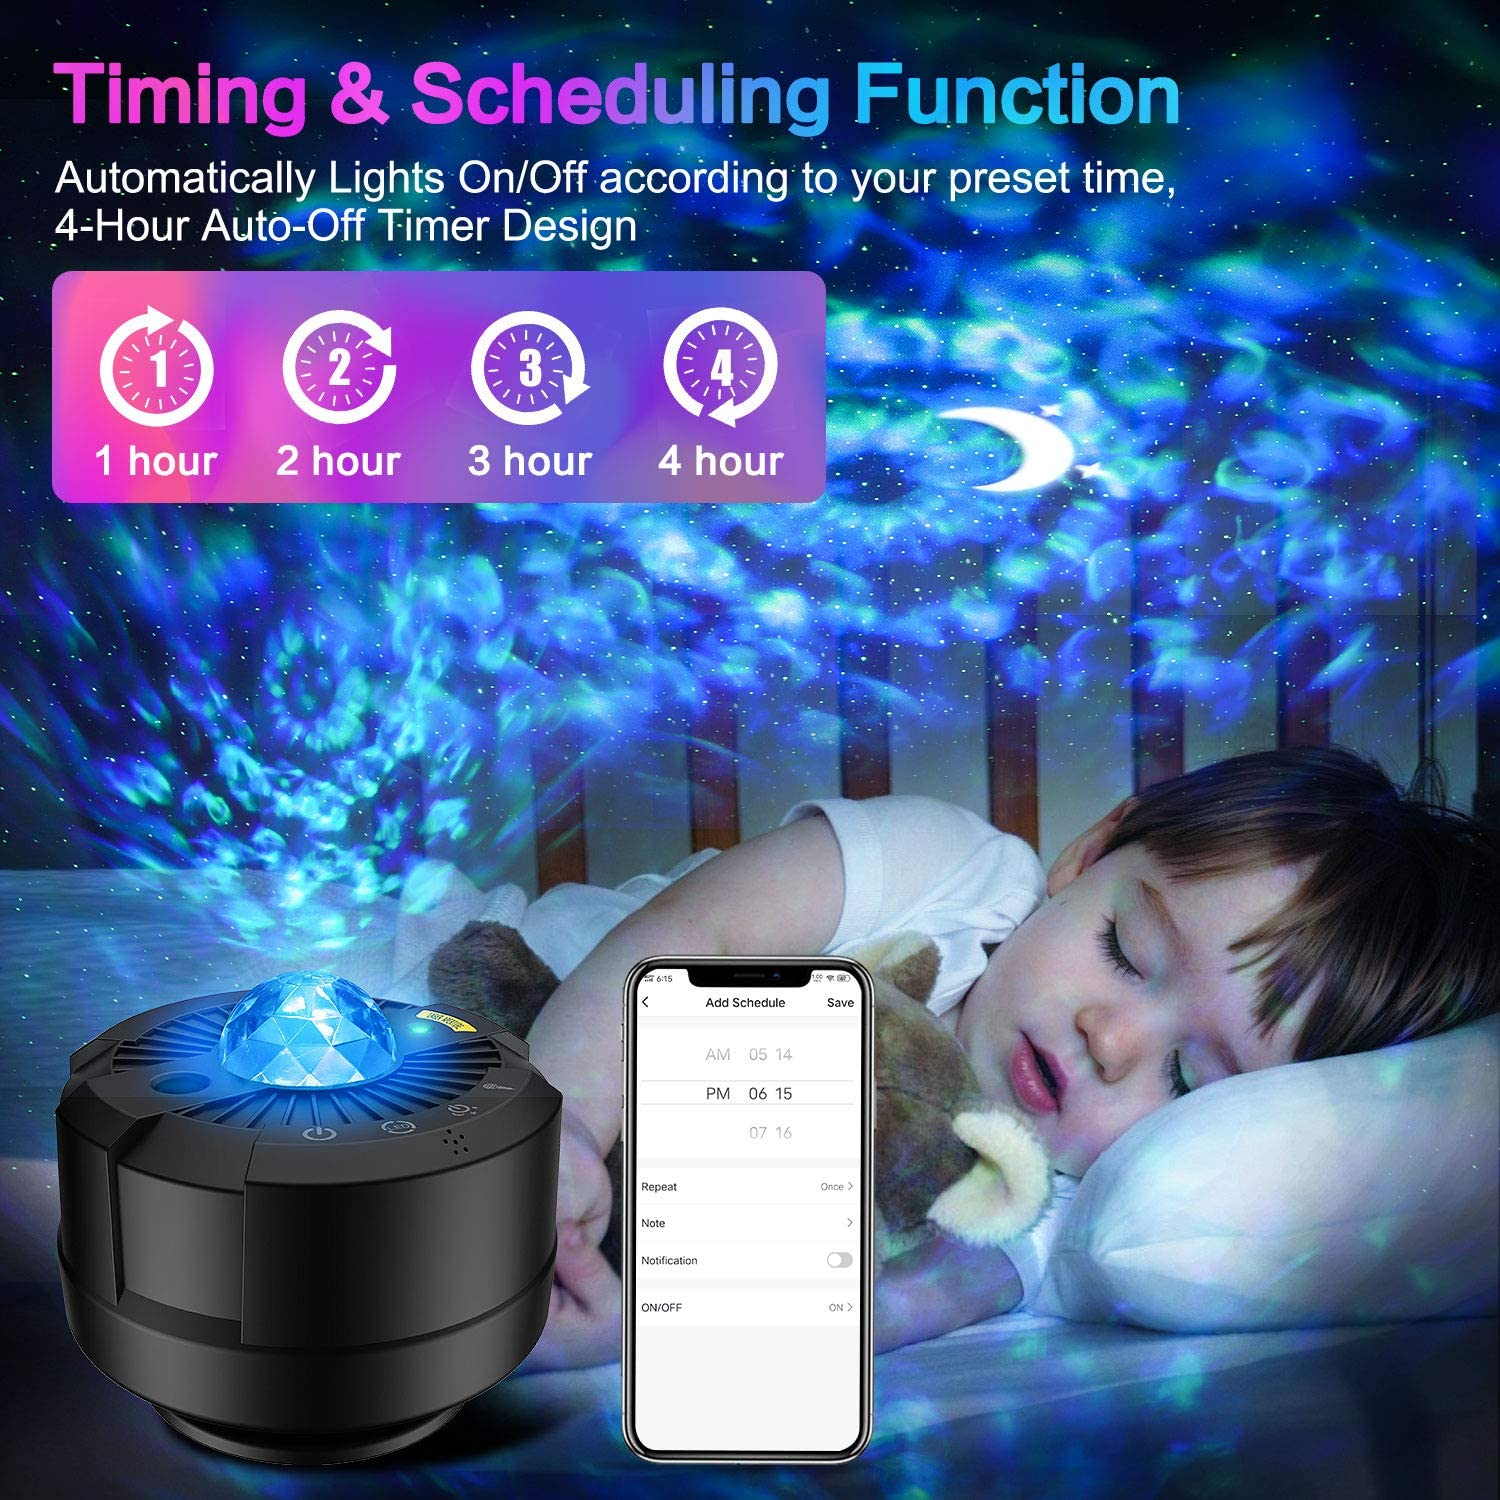 Star Projector Led Night Light Moon Galaxy Projection Bedroom Lighting Smart APP with Remote Control for Baby Kids Gifts enlarge